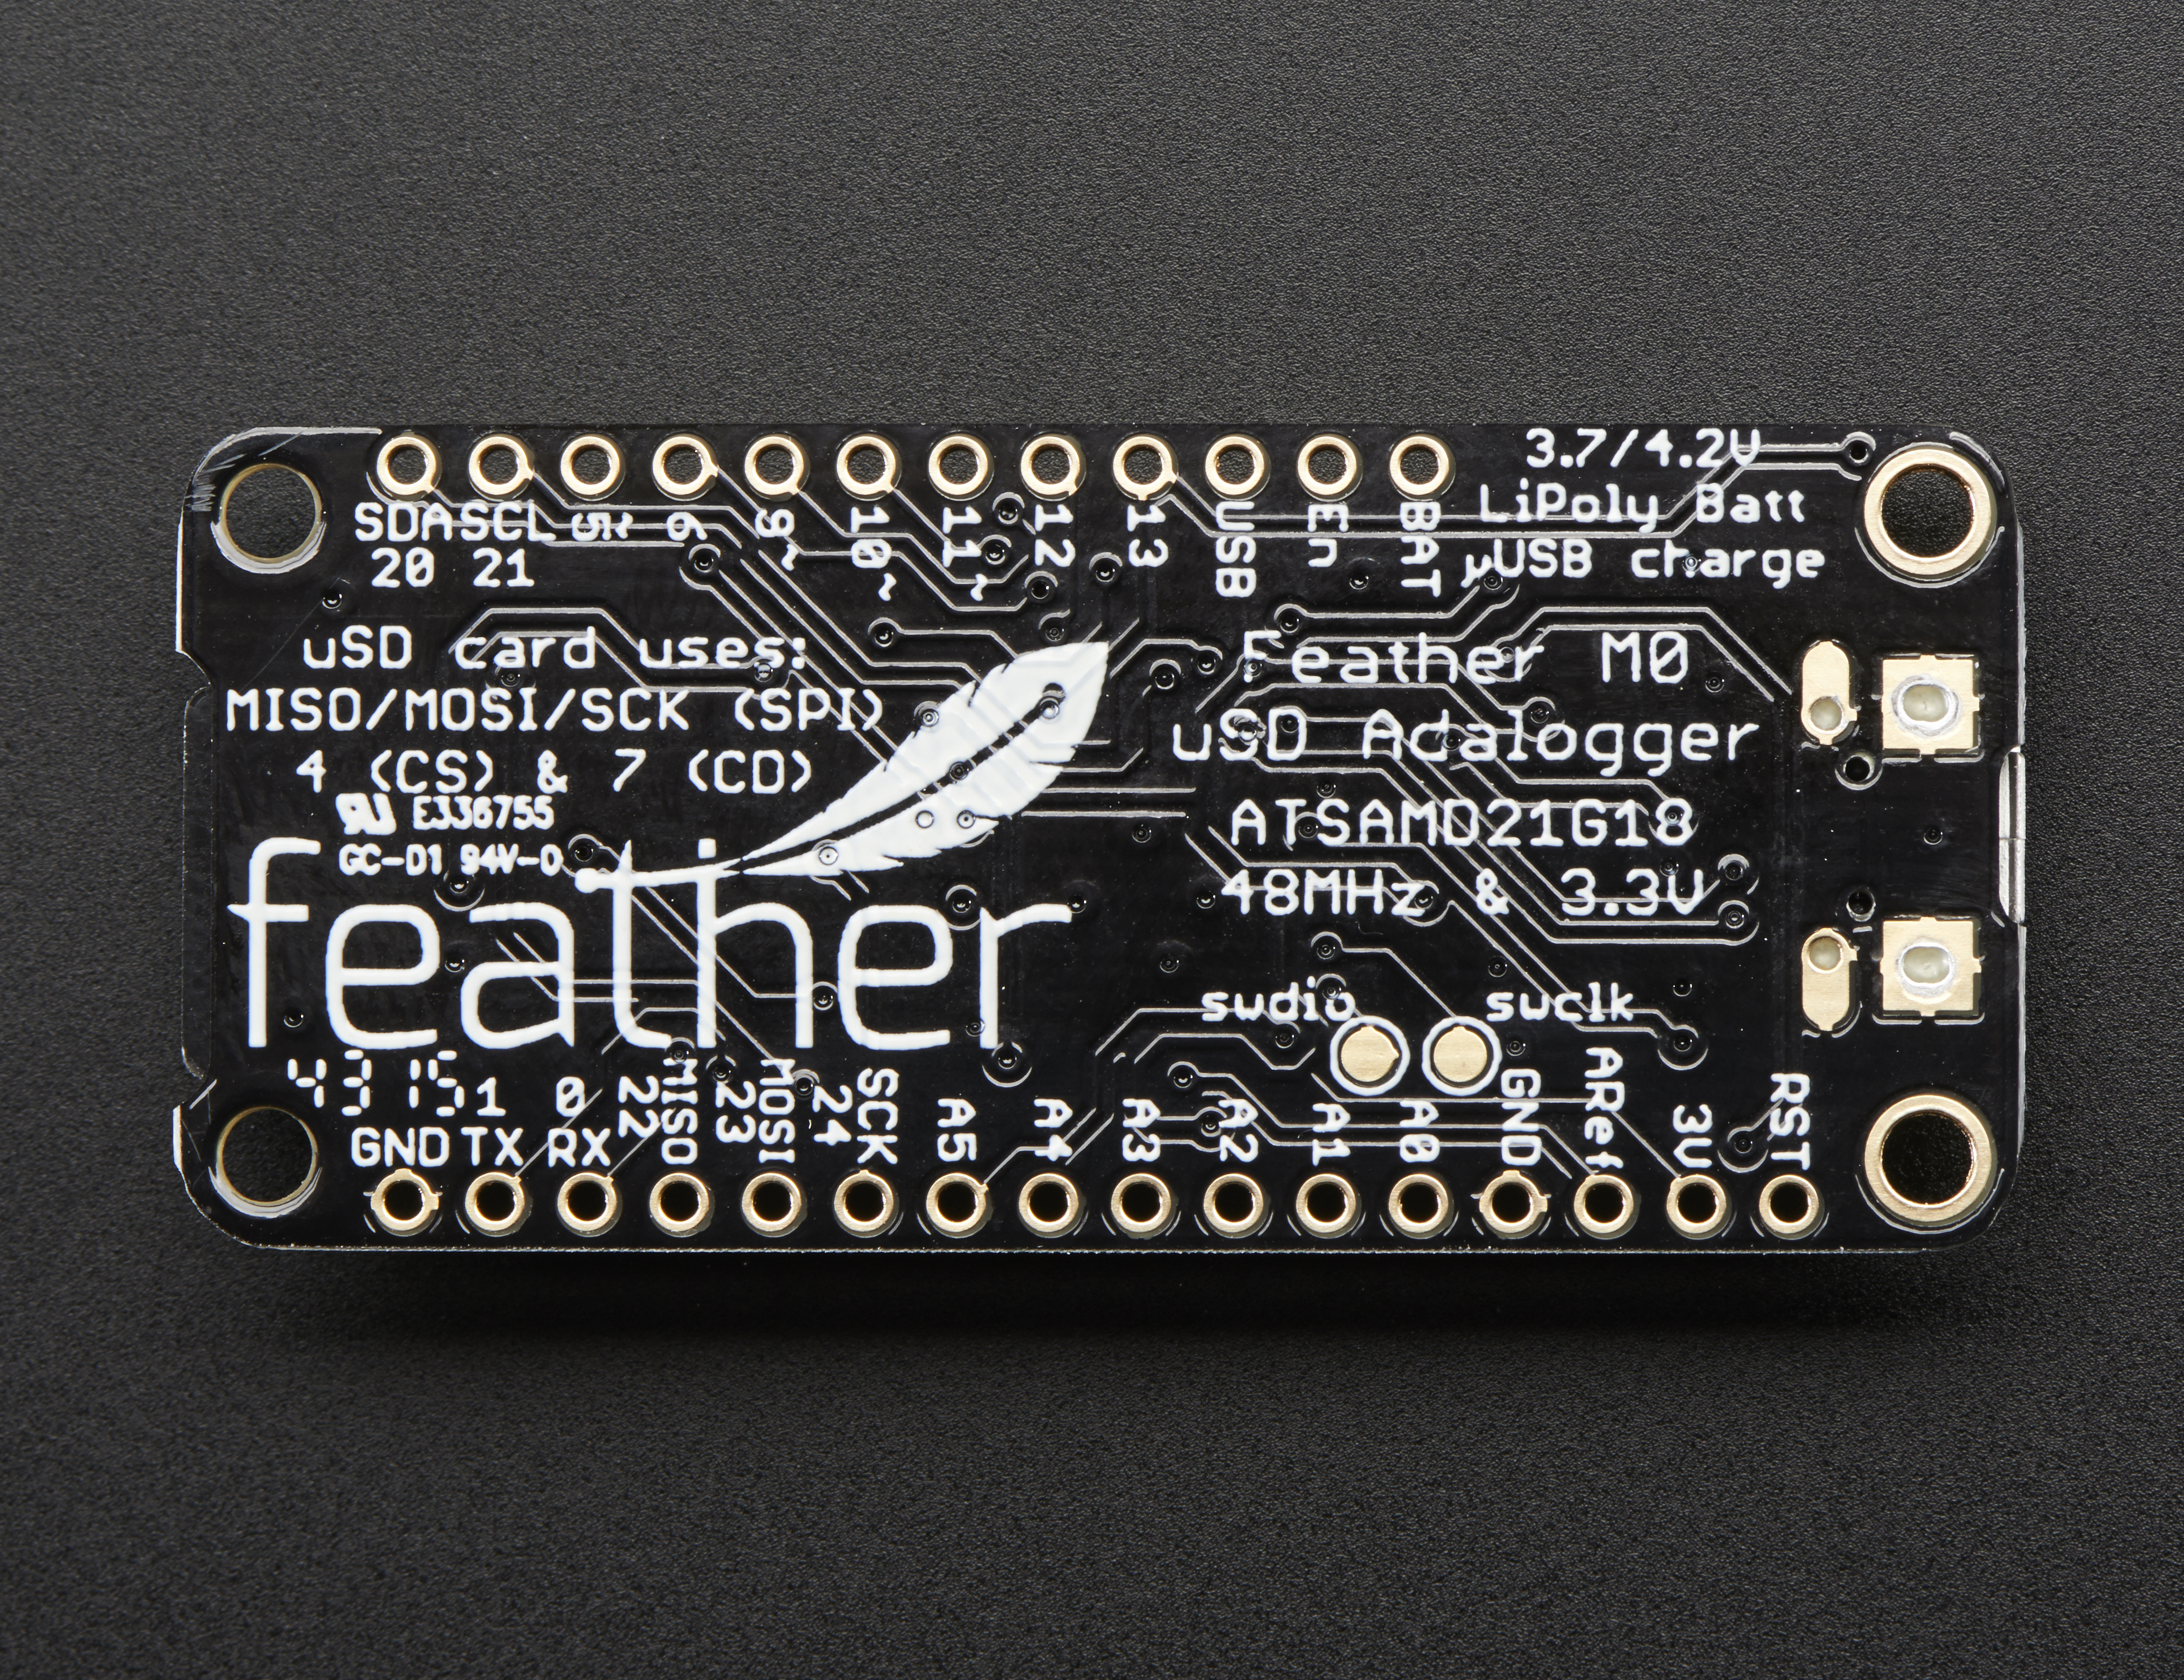 adafruit_products_2796_bottom_ORIG.jpg